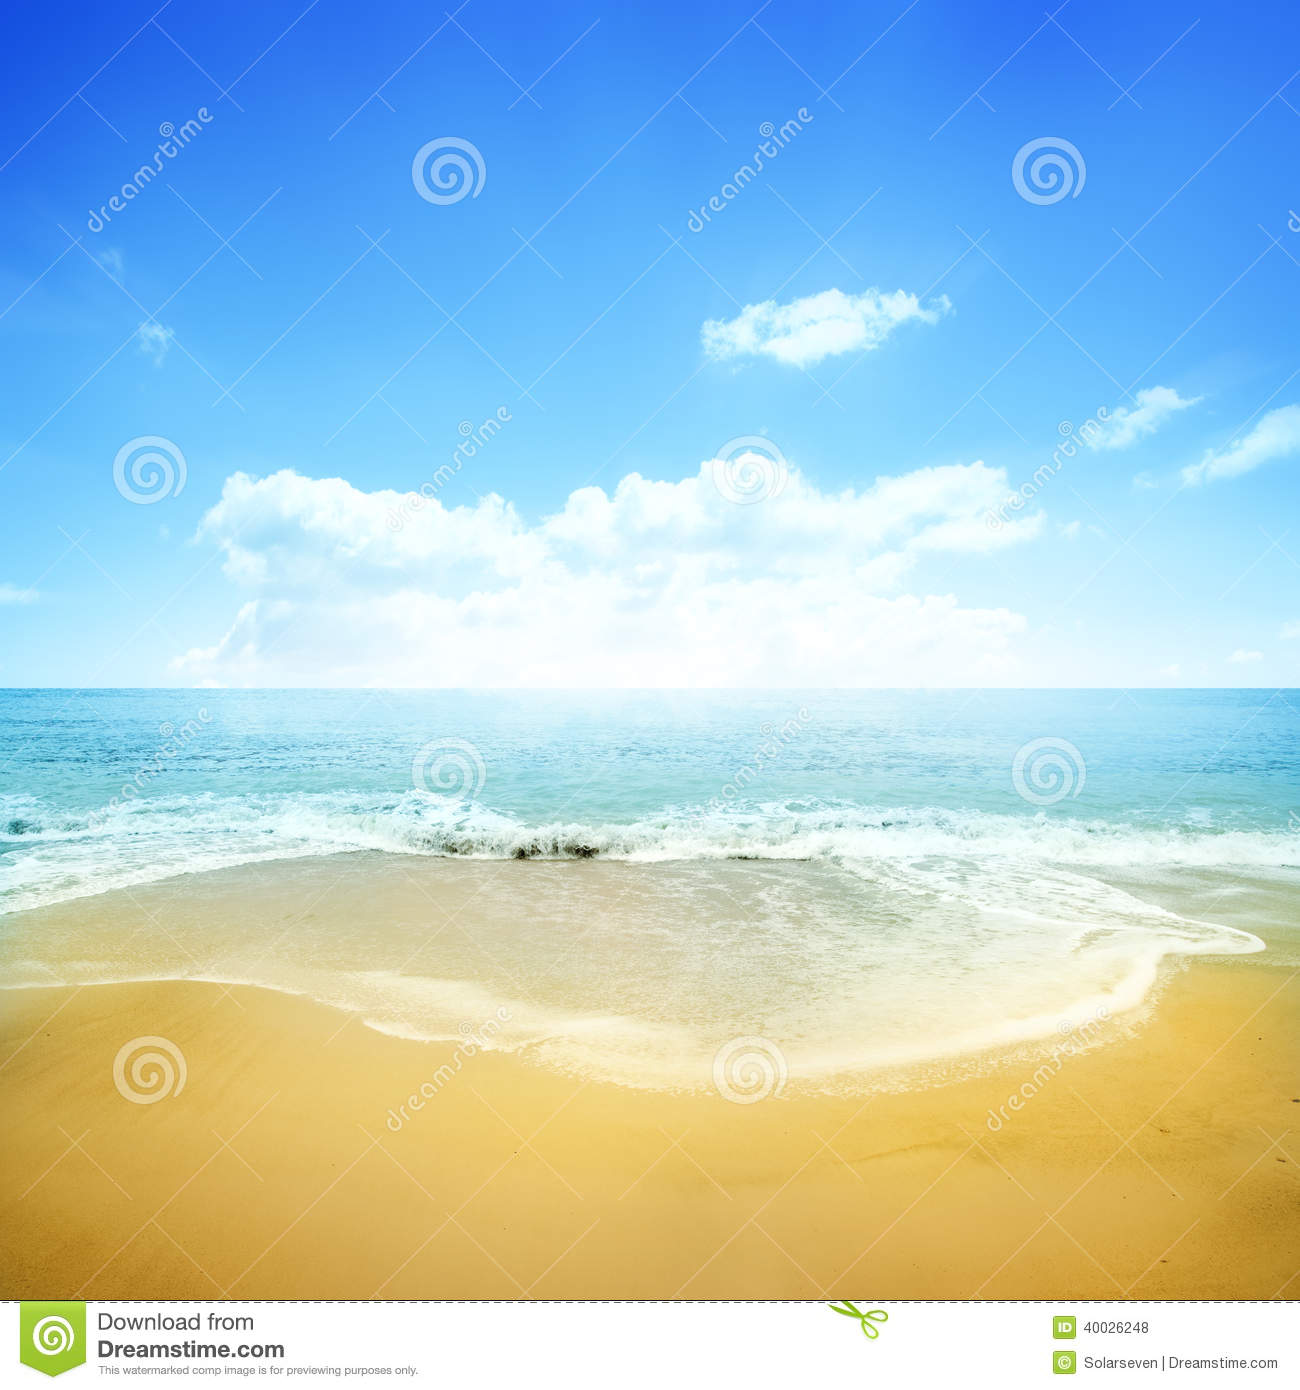 Sand Beach In Summer Sky Background: Golden Beach And Blue Sky Stock Photo. Image Of Sand